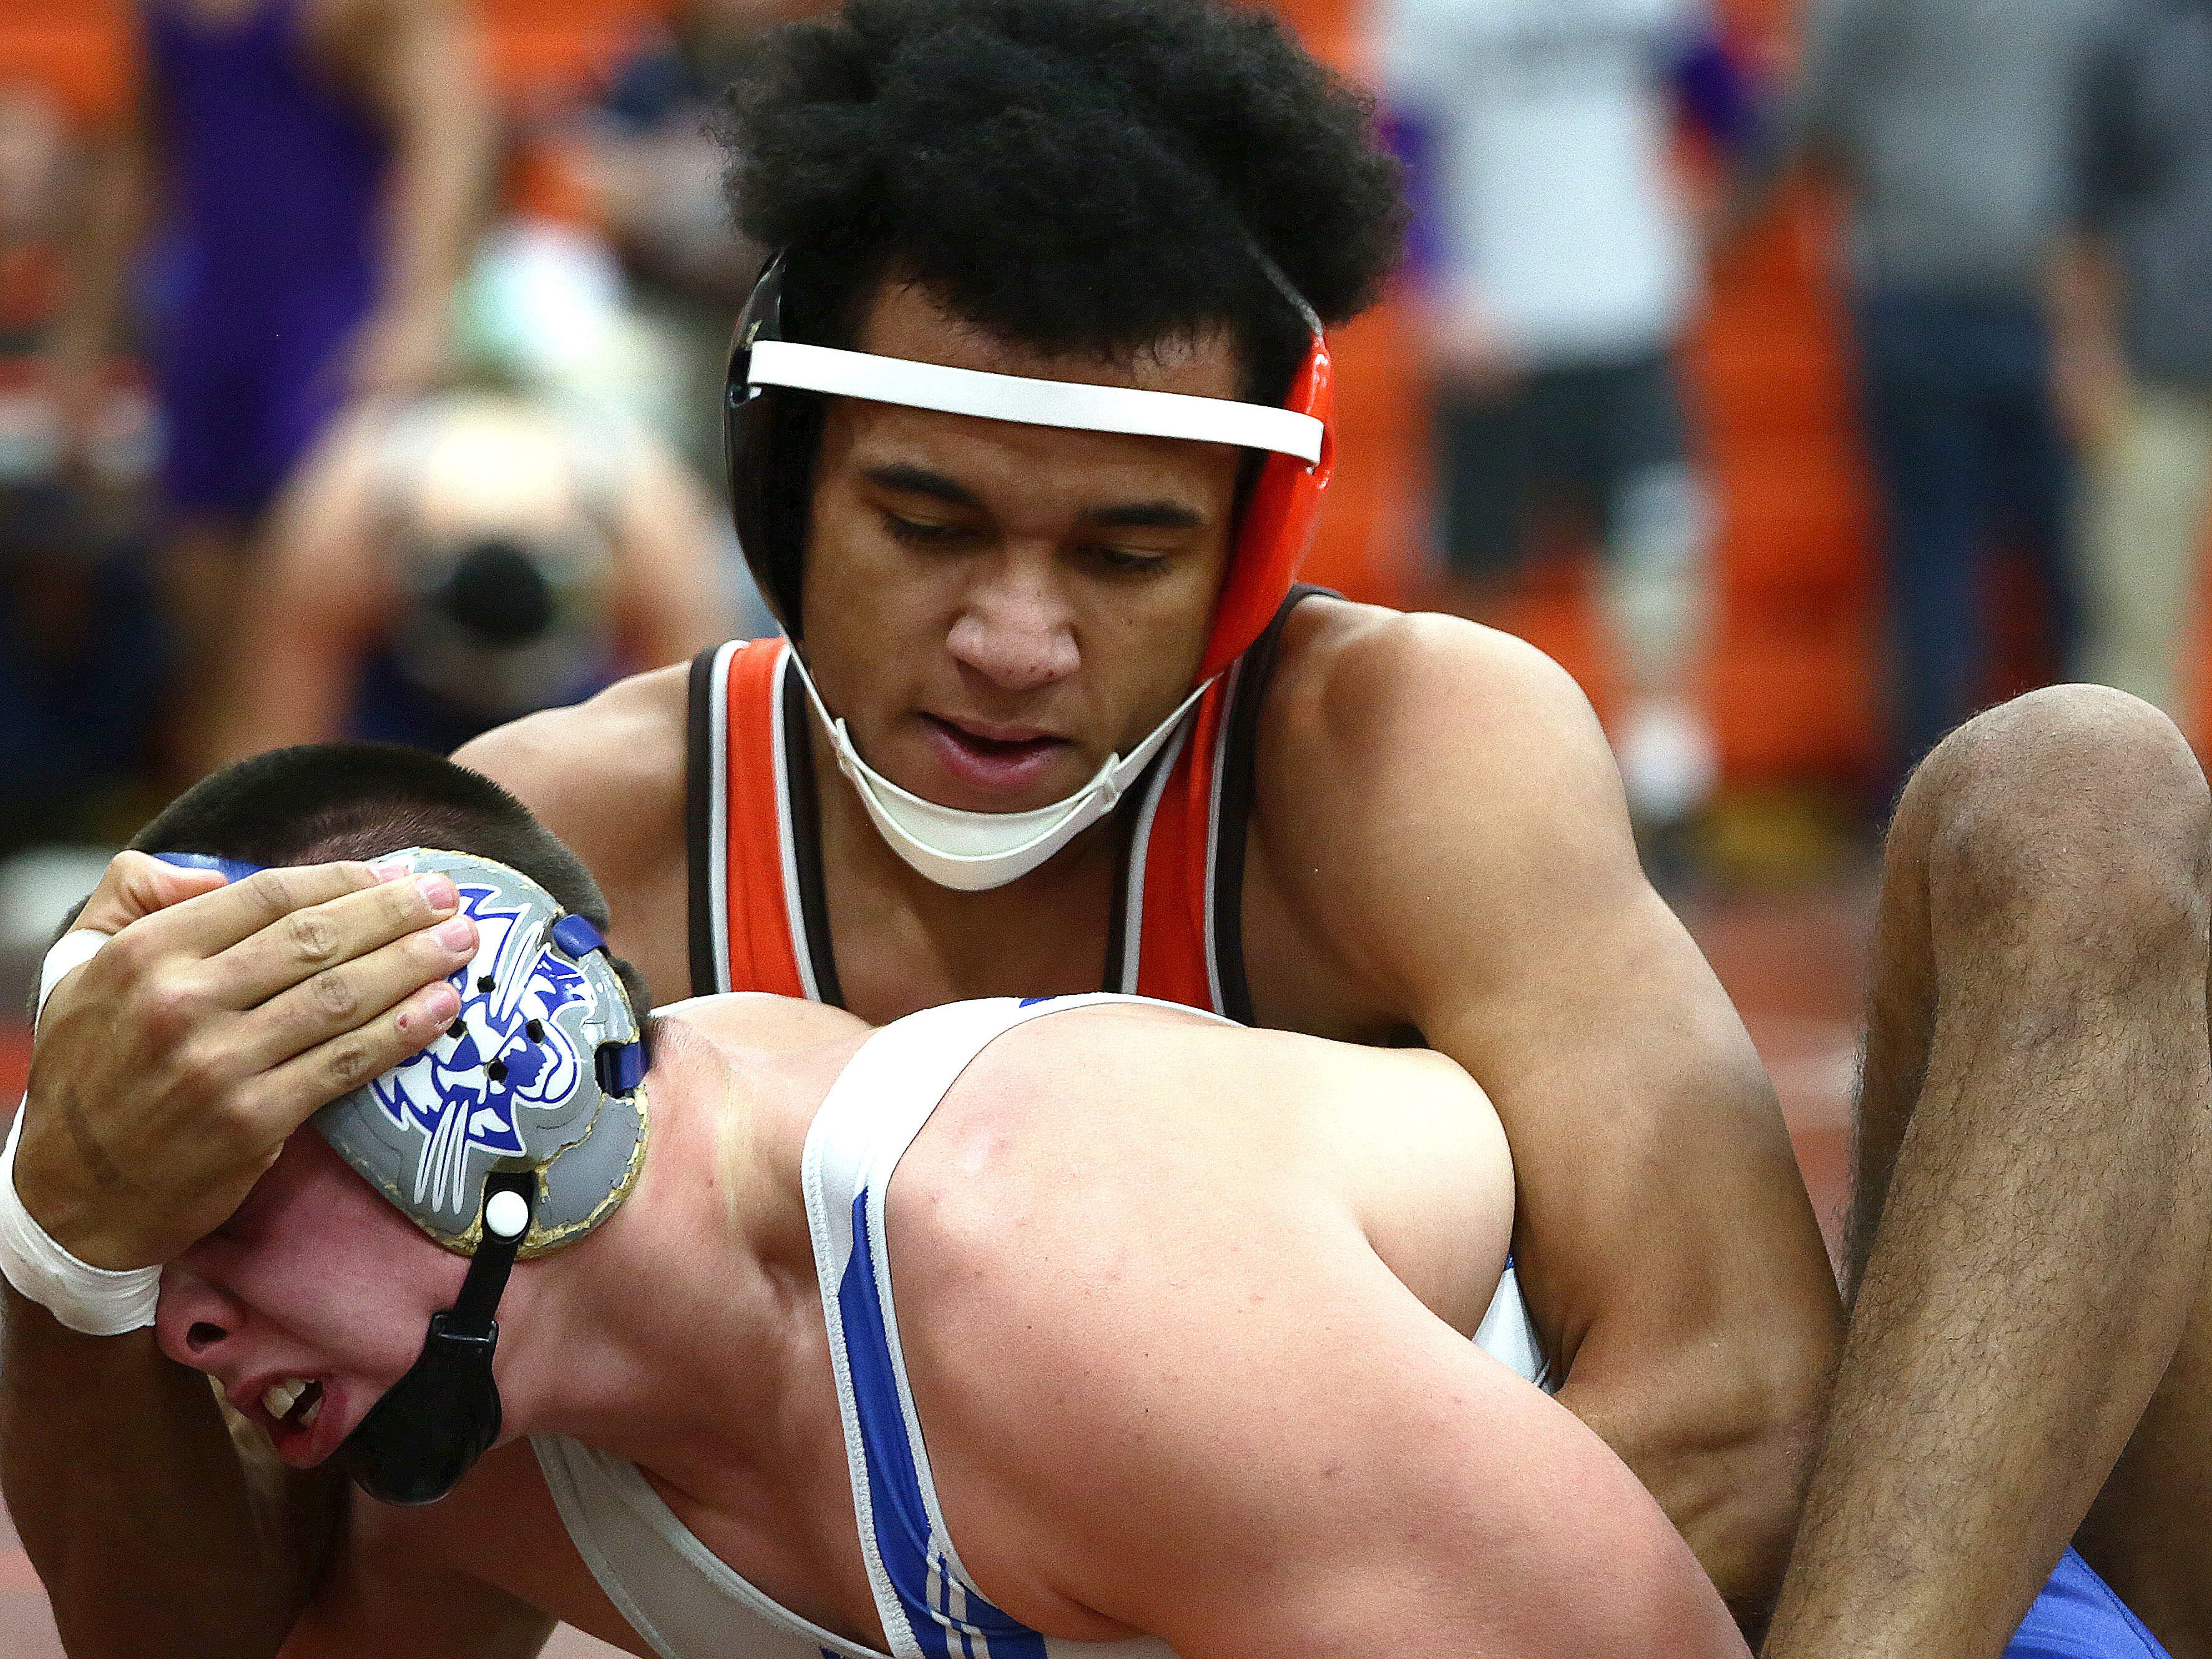 Deondre Williams of Mansfield Senior's Deondre Williams wrestles with Cambridge's Logan Hickenbottom of Cambridge during Friday's opening session of the 53rd J.C. Gorman Invitational.